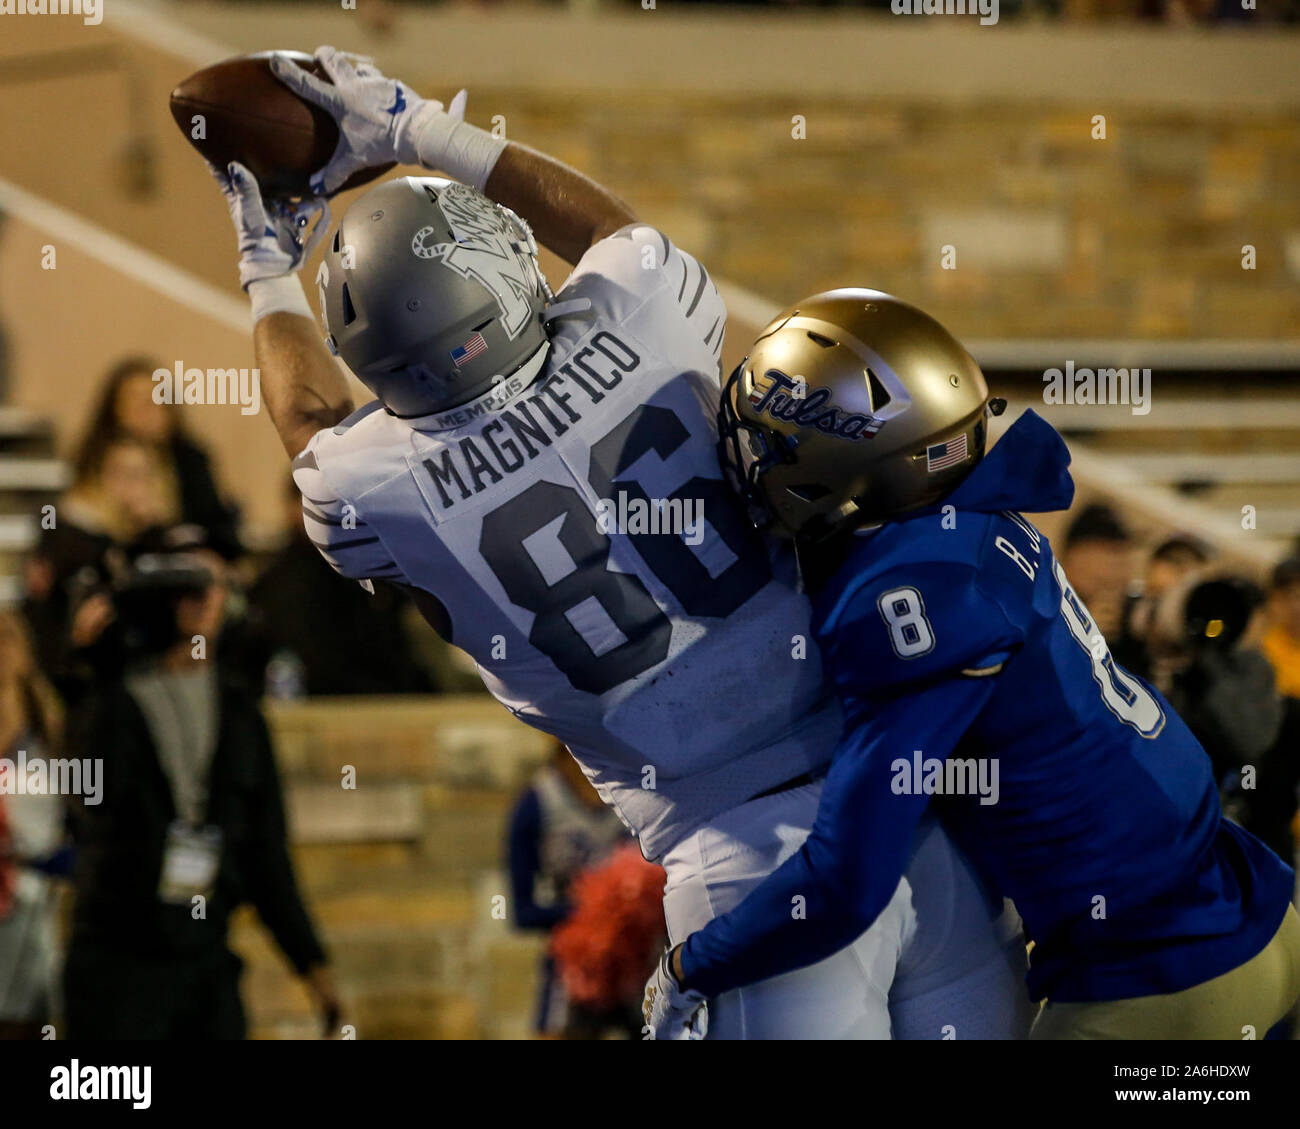 Tulsa, OK, USA. 26th Oct, 2019. Memphis Tight End JOEY MAGNIFICO (86) catches a pass in the endzone over Tulsa defender BRANDON JOHNSON (8) during the Tulsa vs Memphis game on Oct 26th, 2019 at H.A Chapman Stadium in Tulsa, OK. Credit: Shane Cossey/ZUMA Wire/Alamy Live News Stock Photo